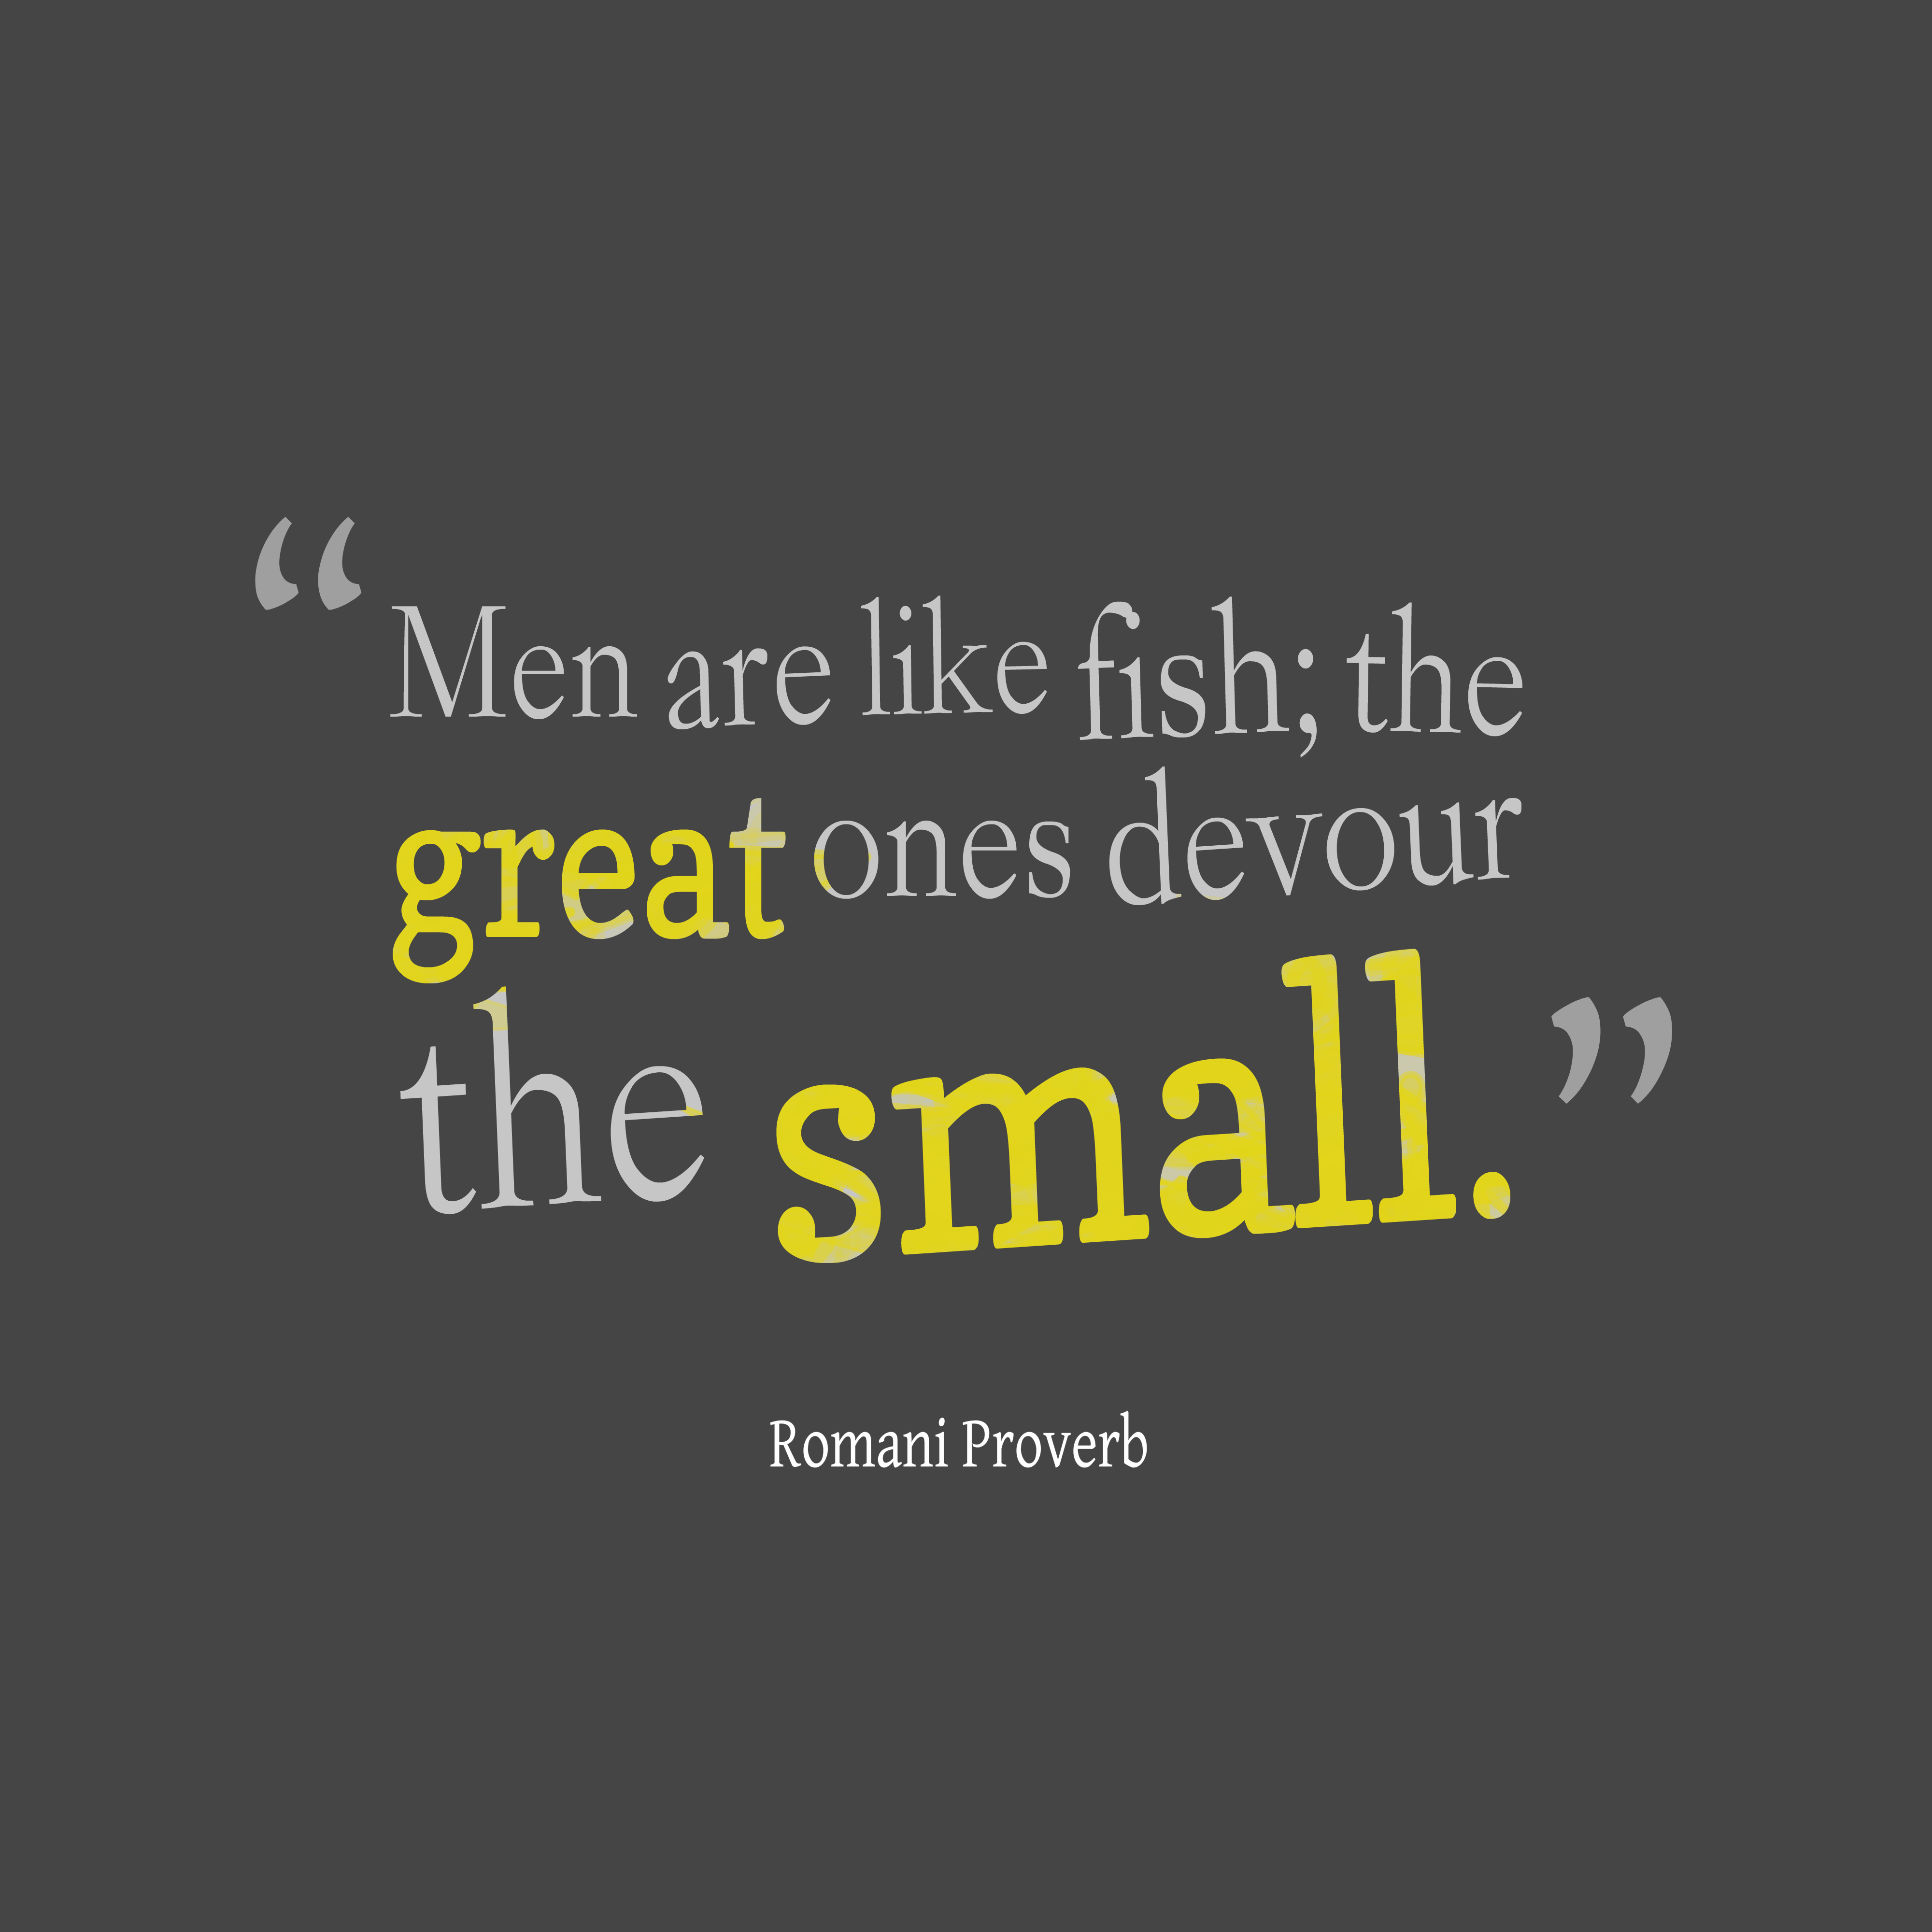 Good Looking Guy Quotes: Picture » Romani Proverb About Men